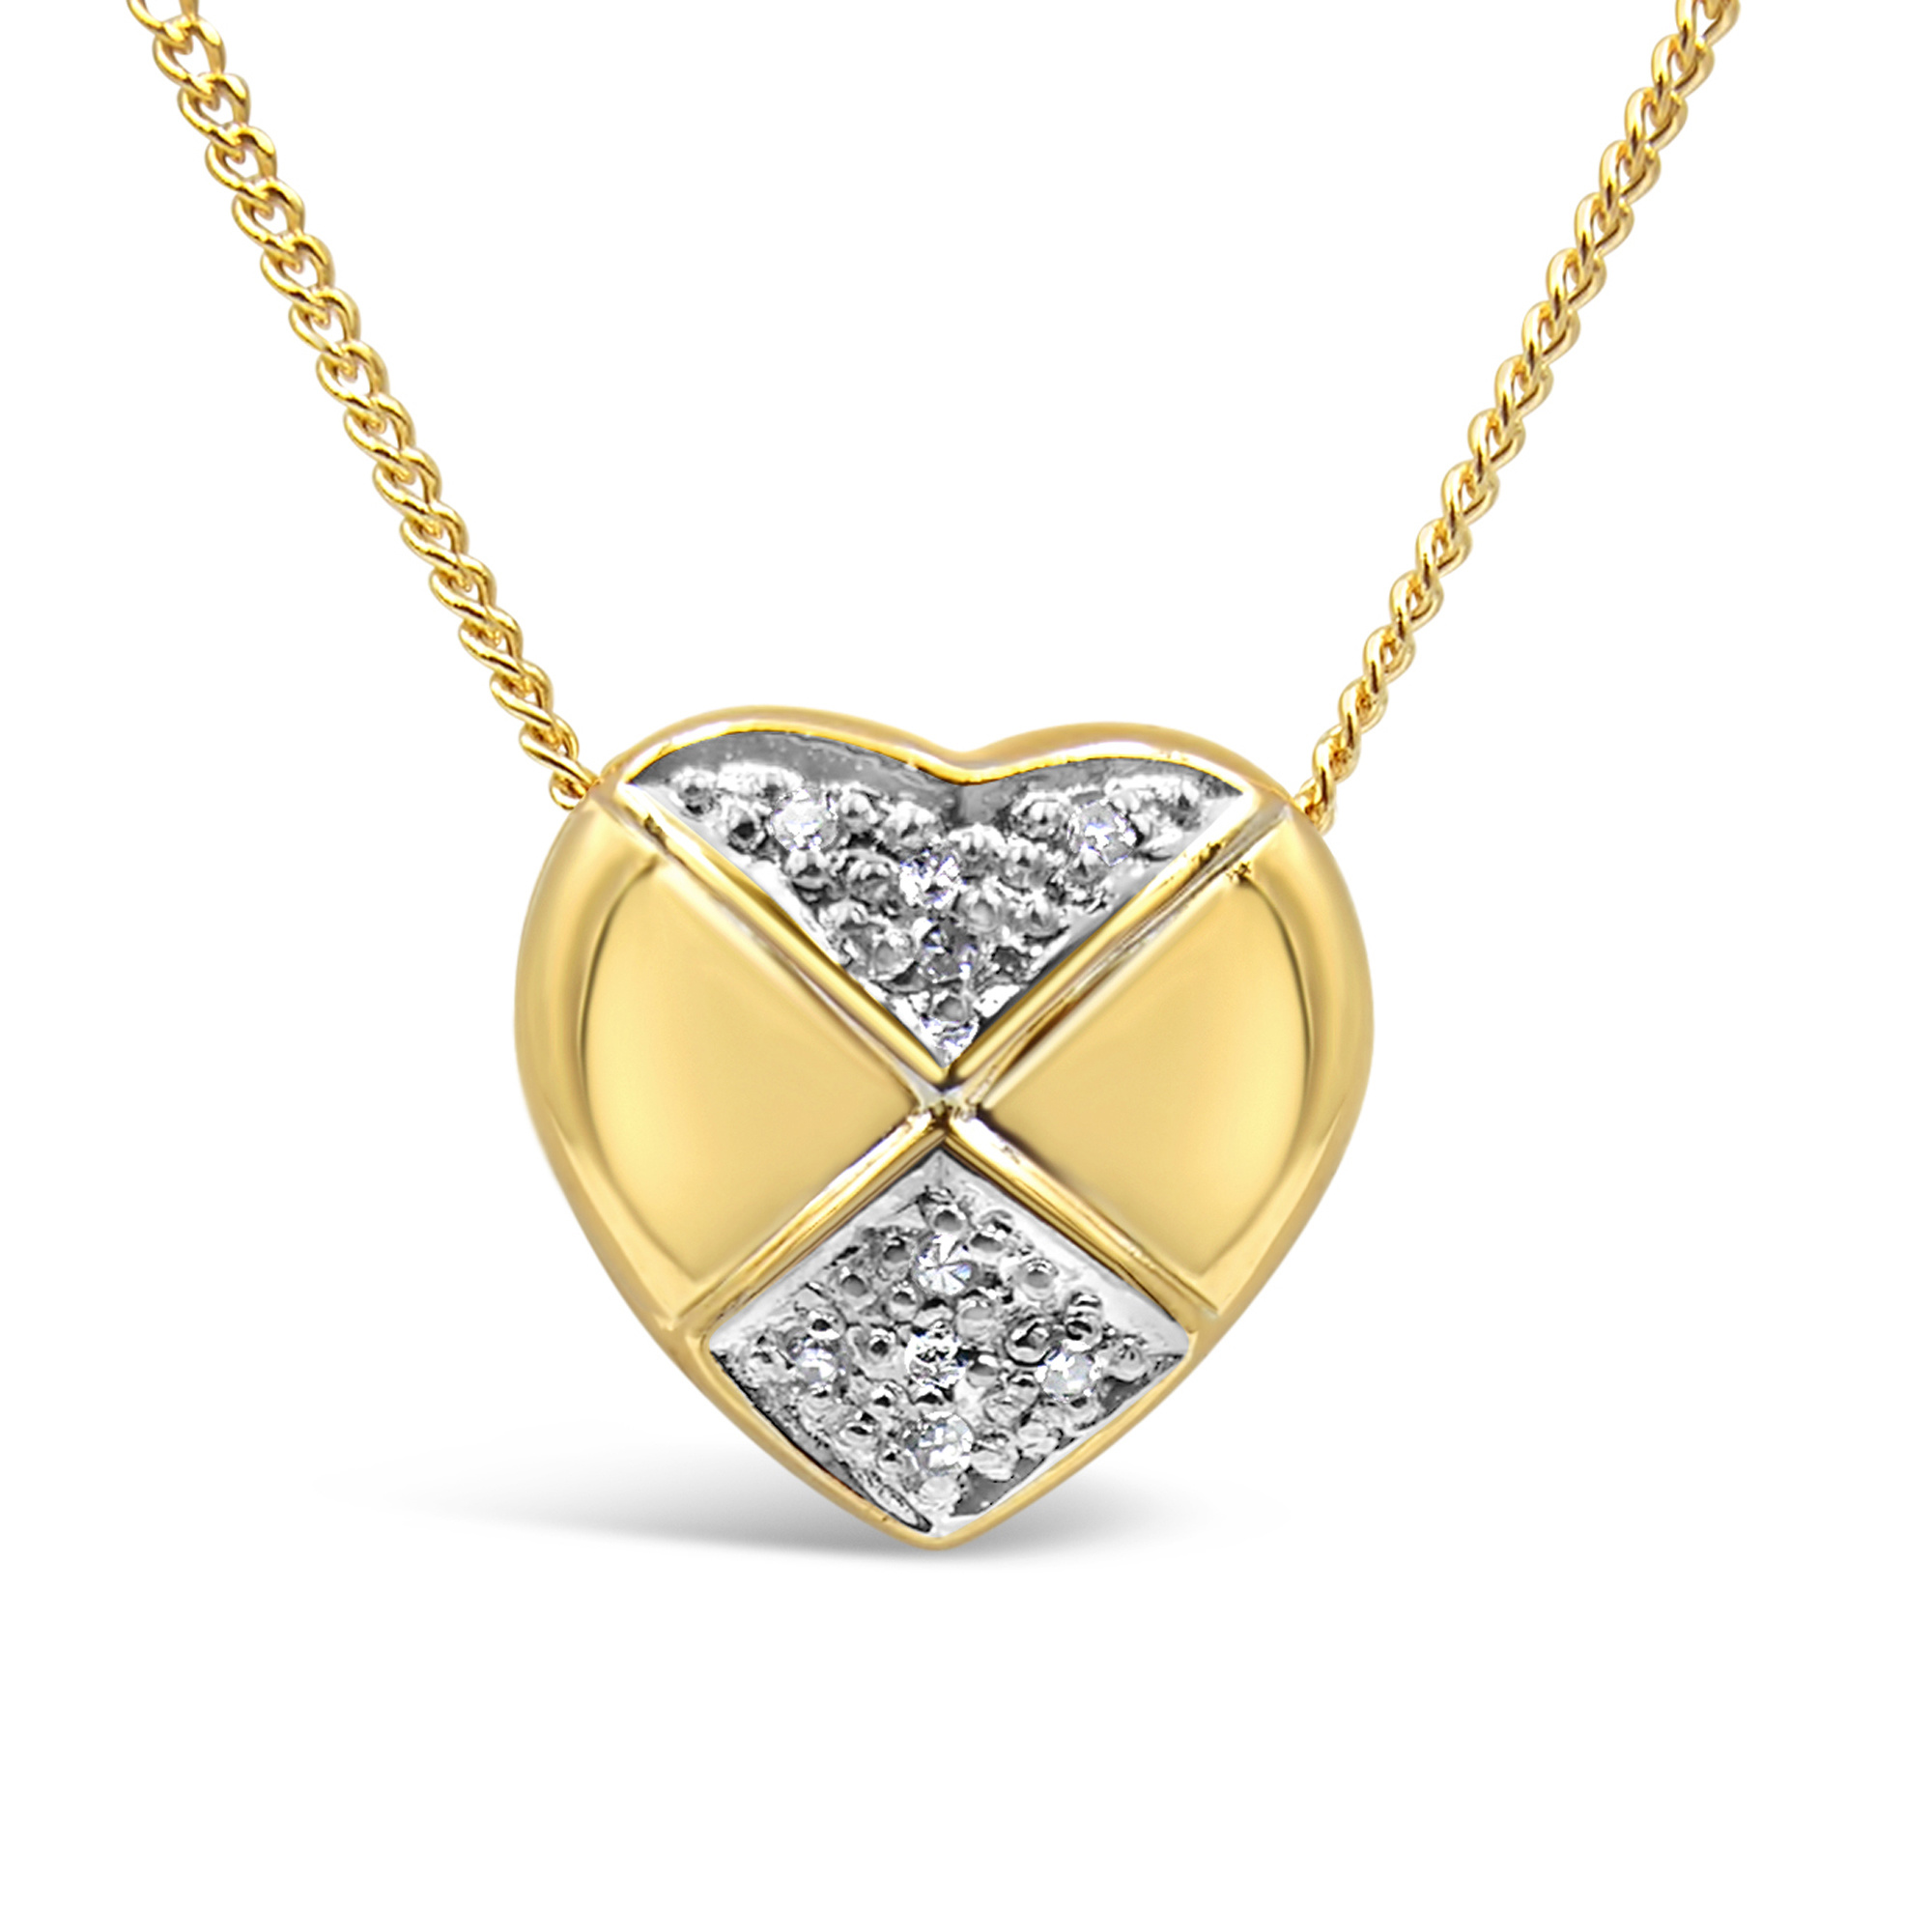 18kt yellow & white gold heart pendant with 0.04 ct diamonds